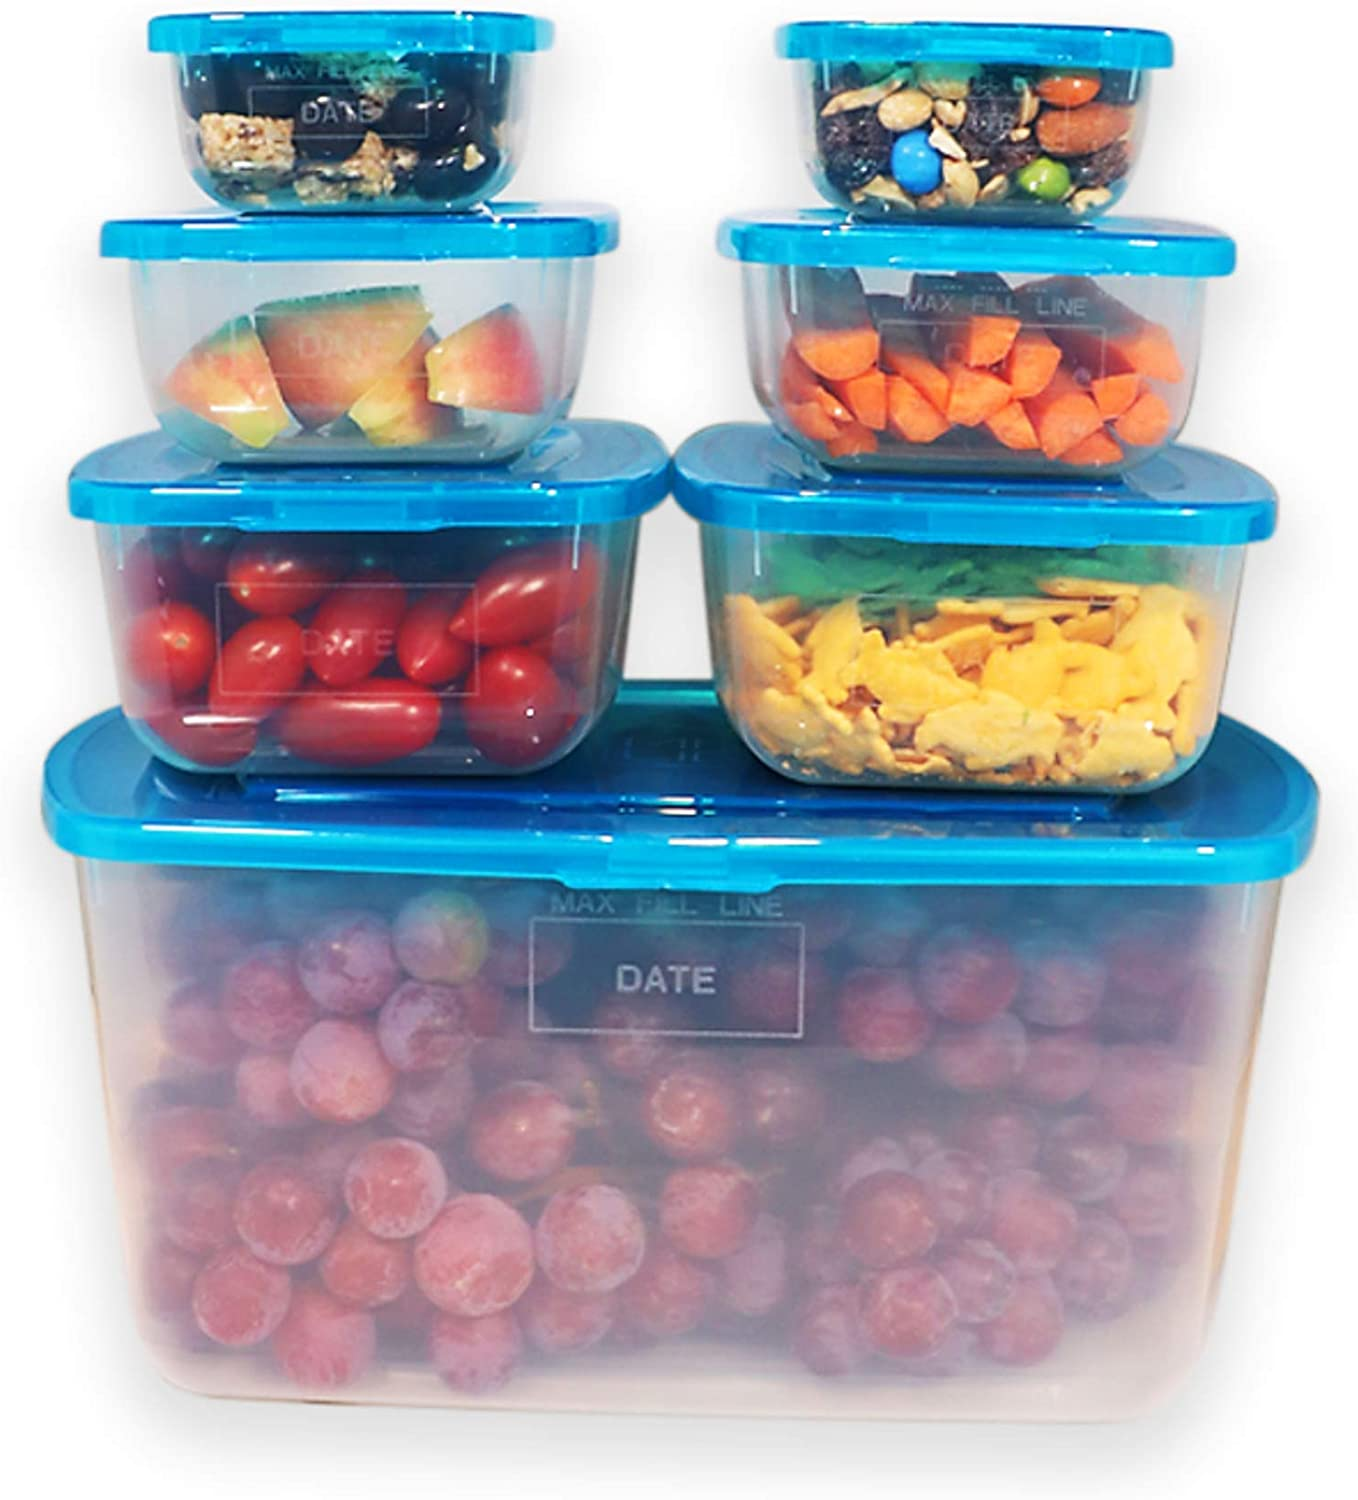 Mr. Lid Premium Attached Storage Containers | Permanently Attached Plastic Lid, Never Lose | Space Saving